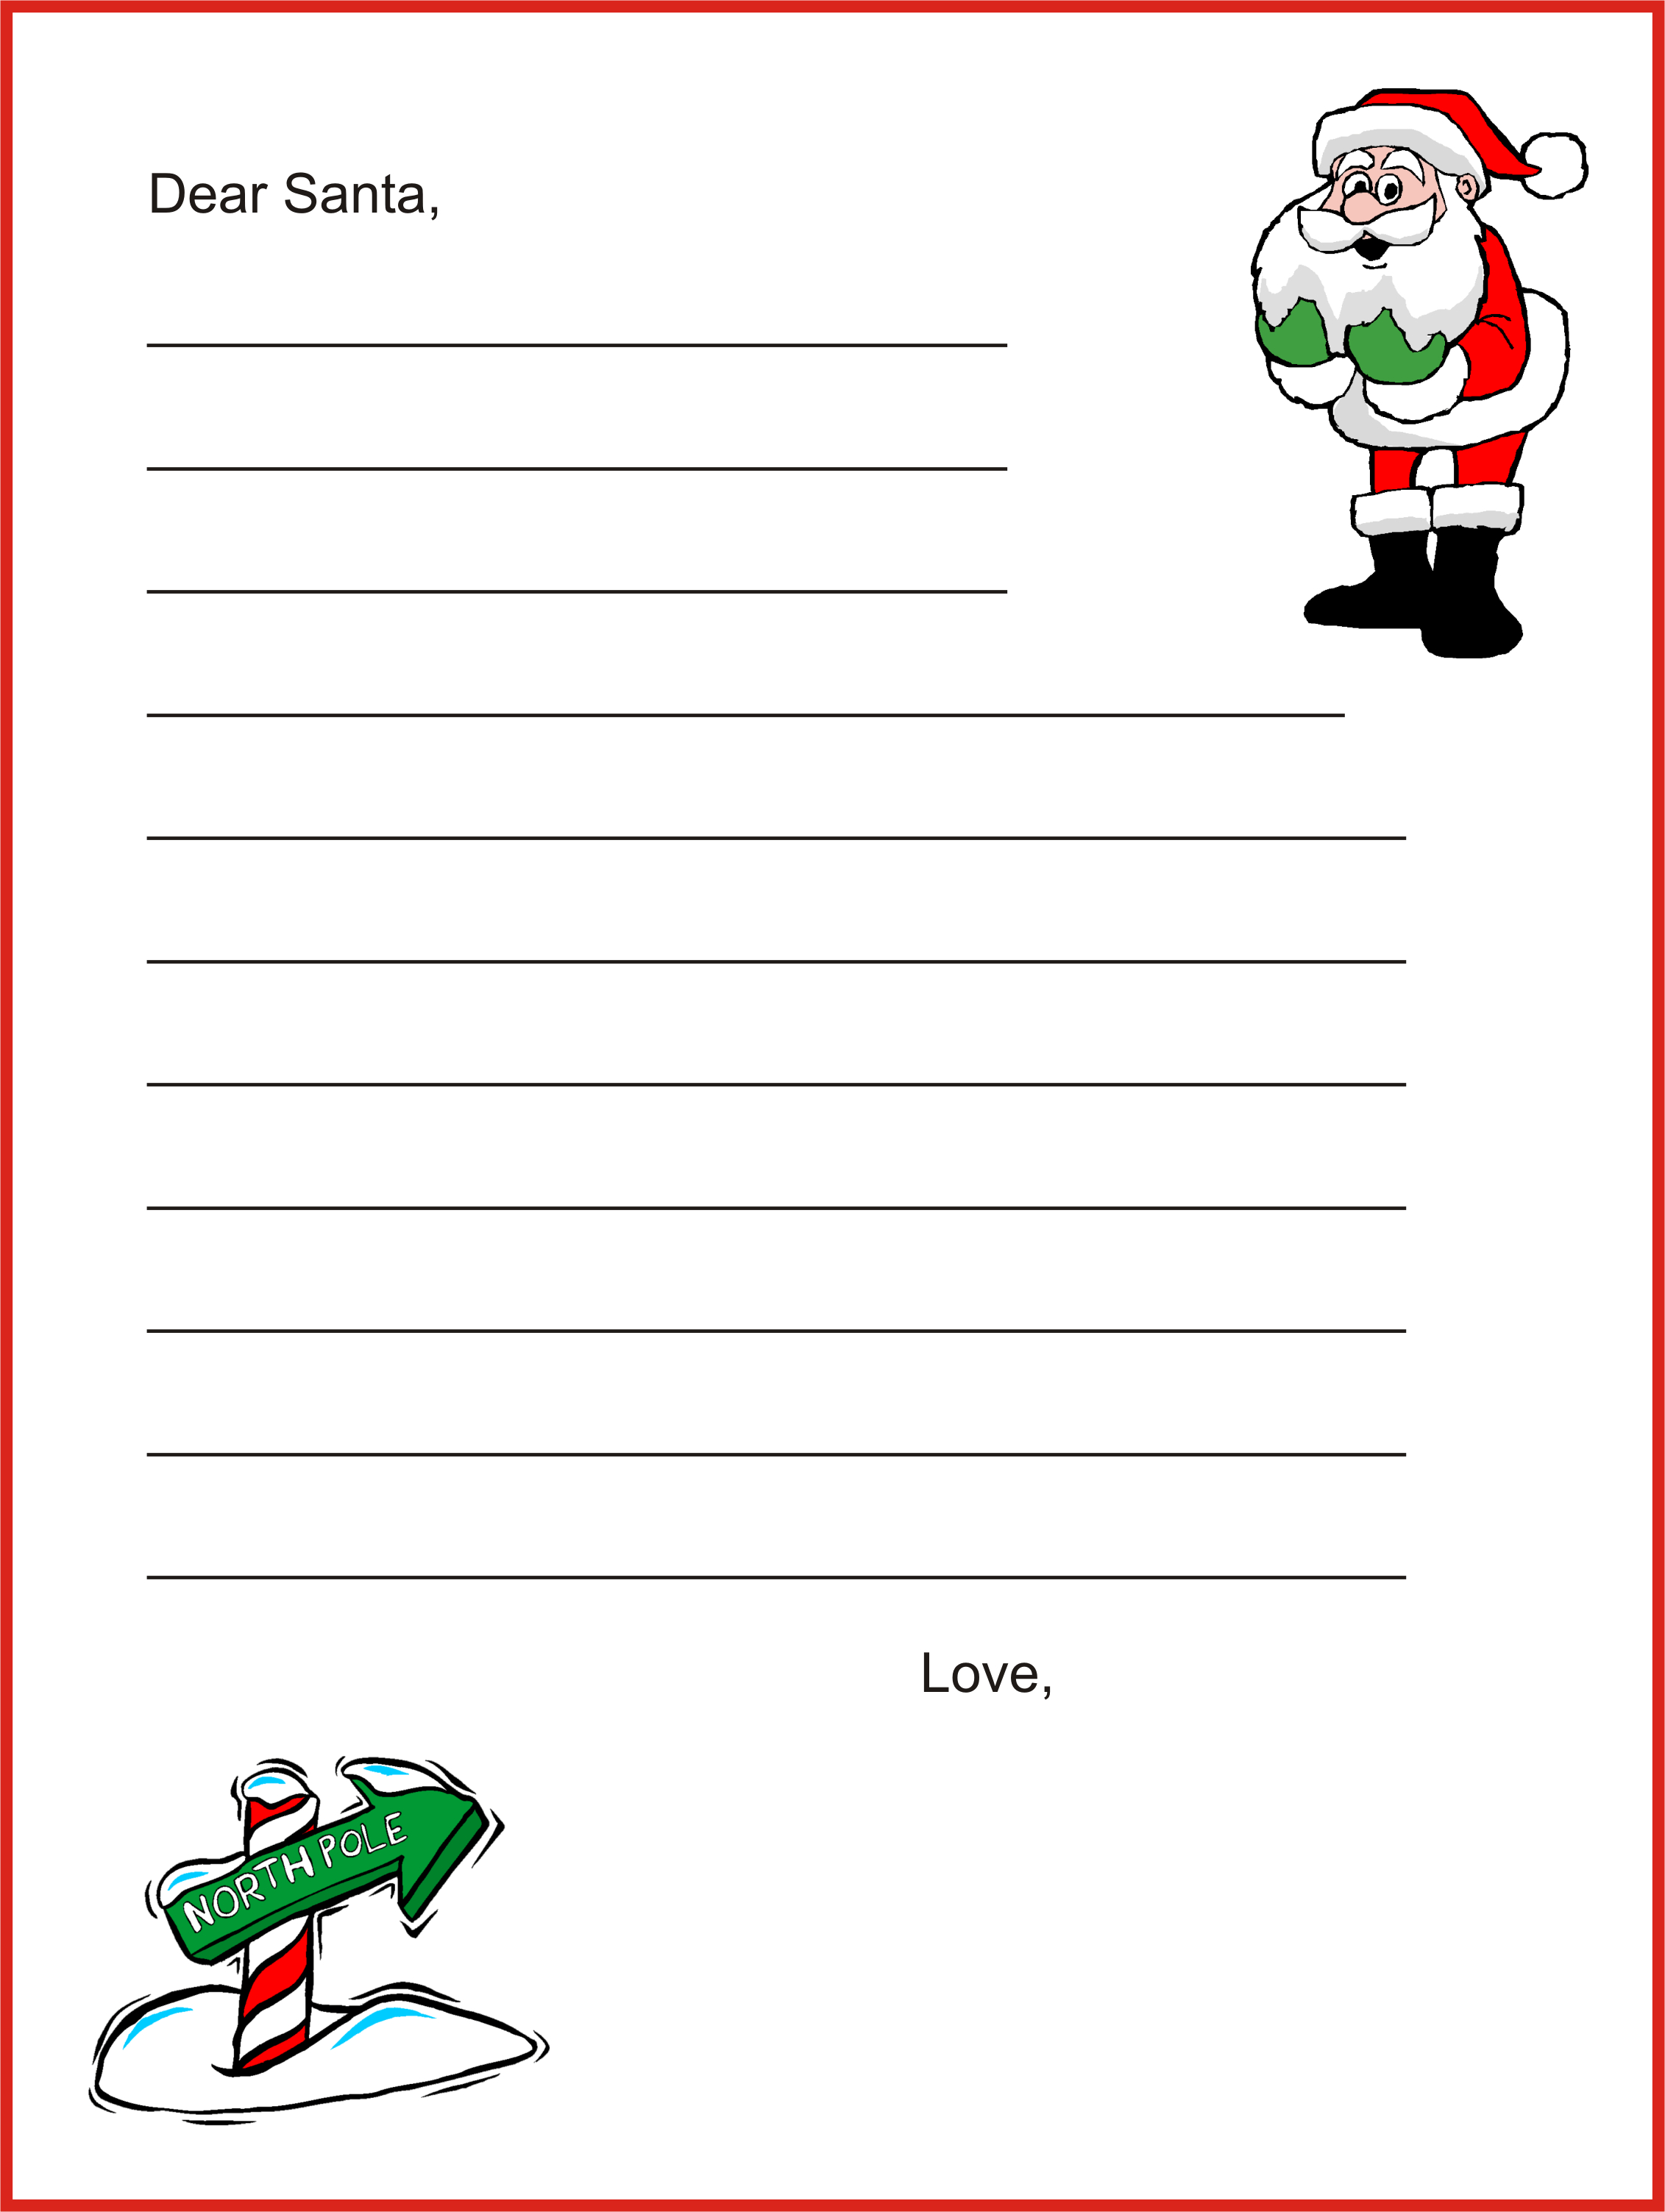 Dear santa letter template christmas letter for Dear santa template kindergarten letter